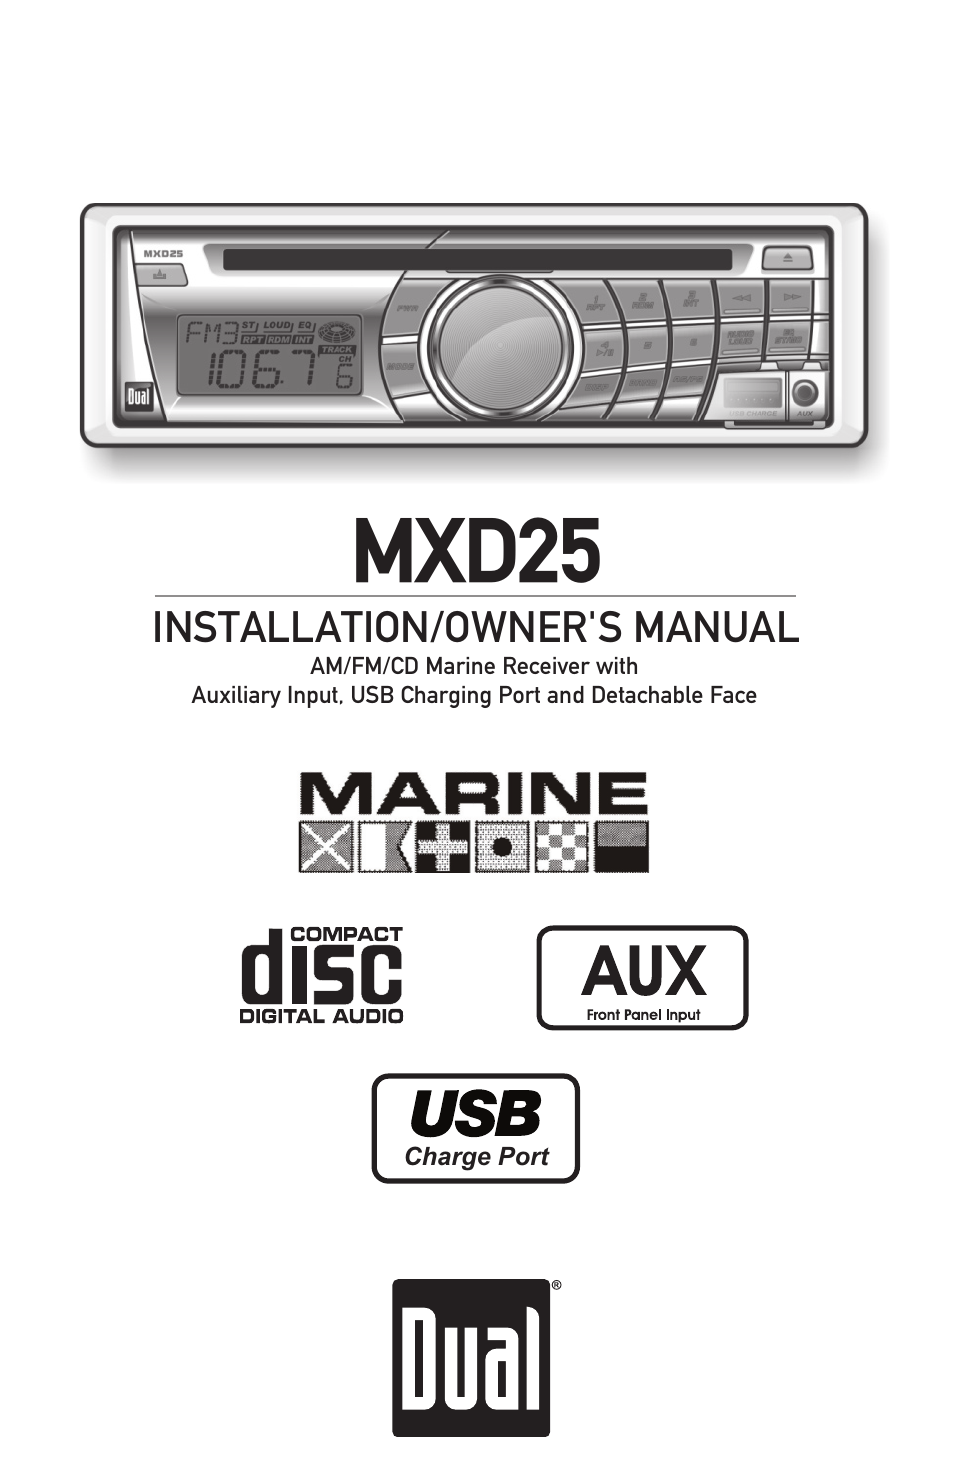 Dual Mxd25 User Manual 12 Pages Nikon D40 Usb Cable Schematic